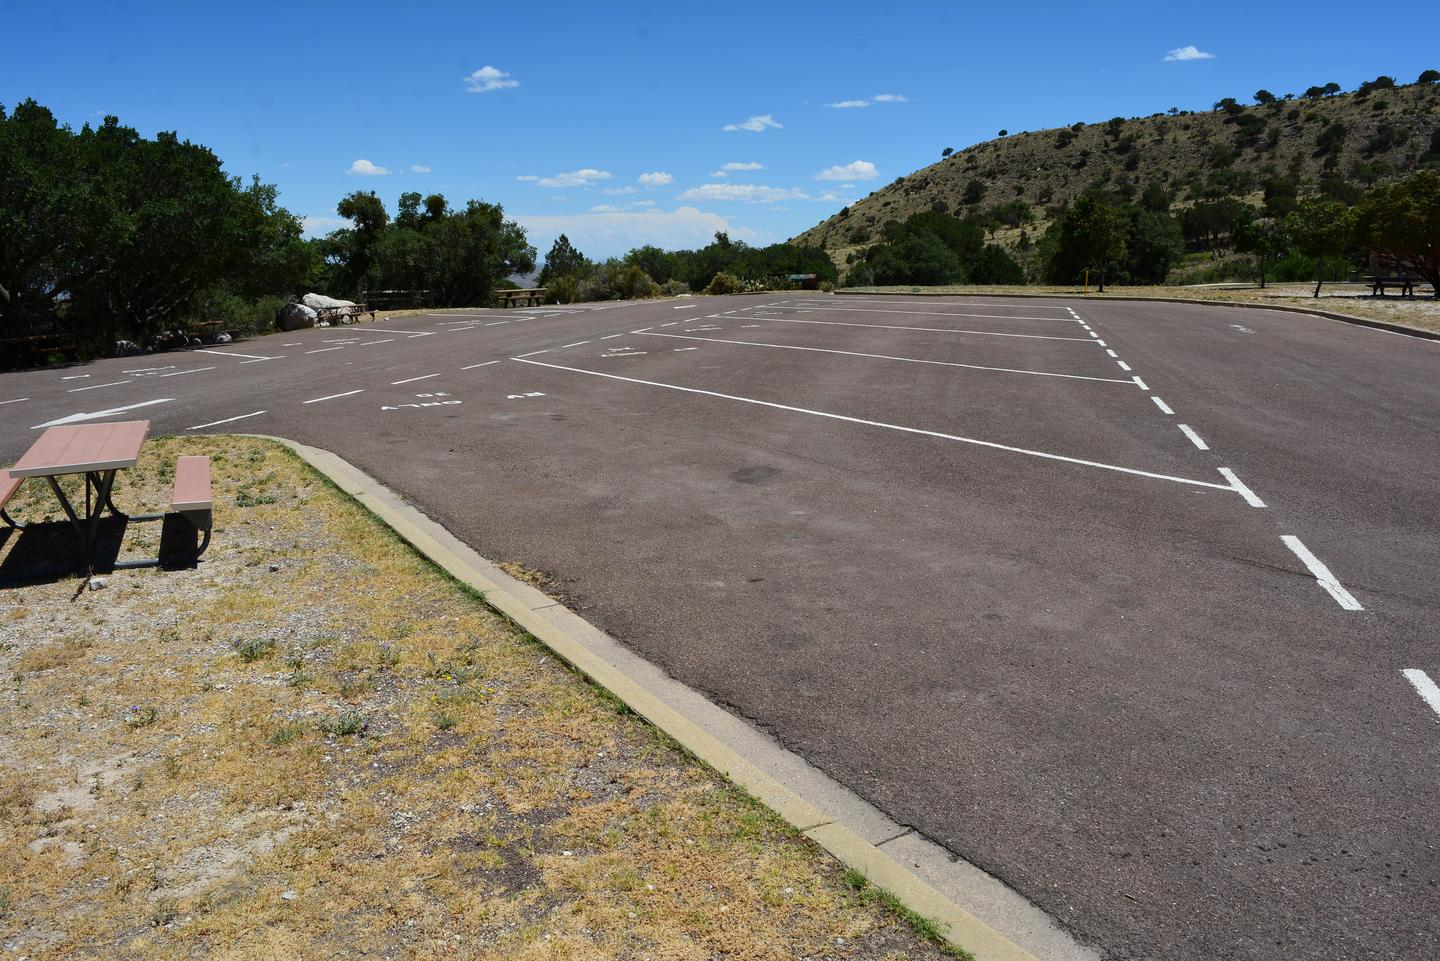 An overview photo of the RV campground with sites 21-30.  Site 30 is shown in the foreground.  A picnic table is available at this site. An overview photo of the RV campground with sites 21-30.